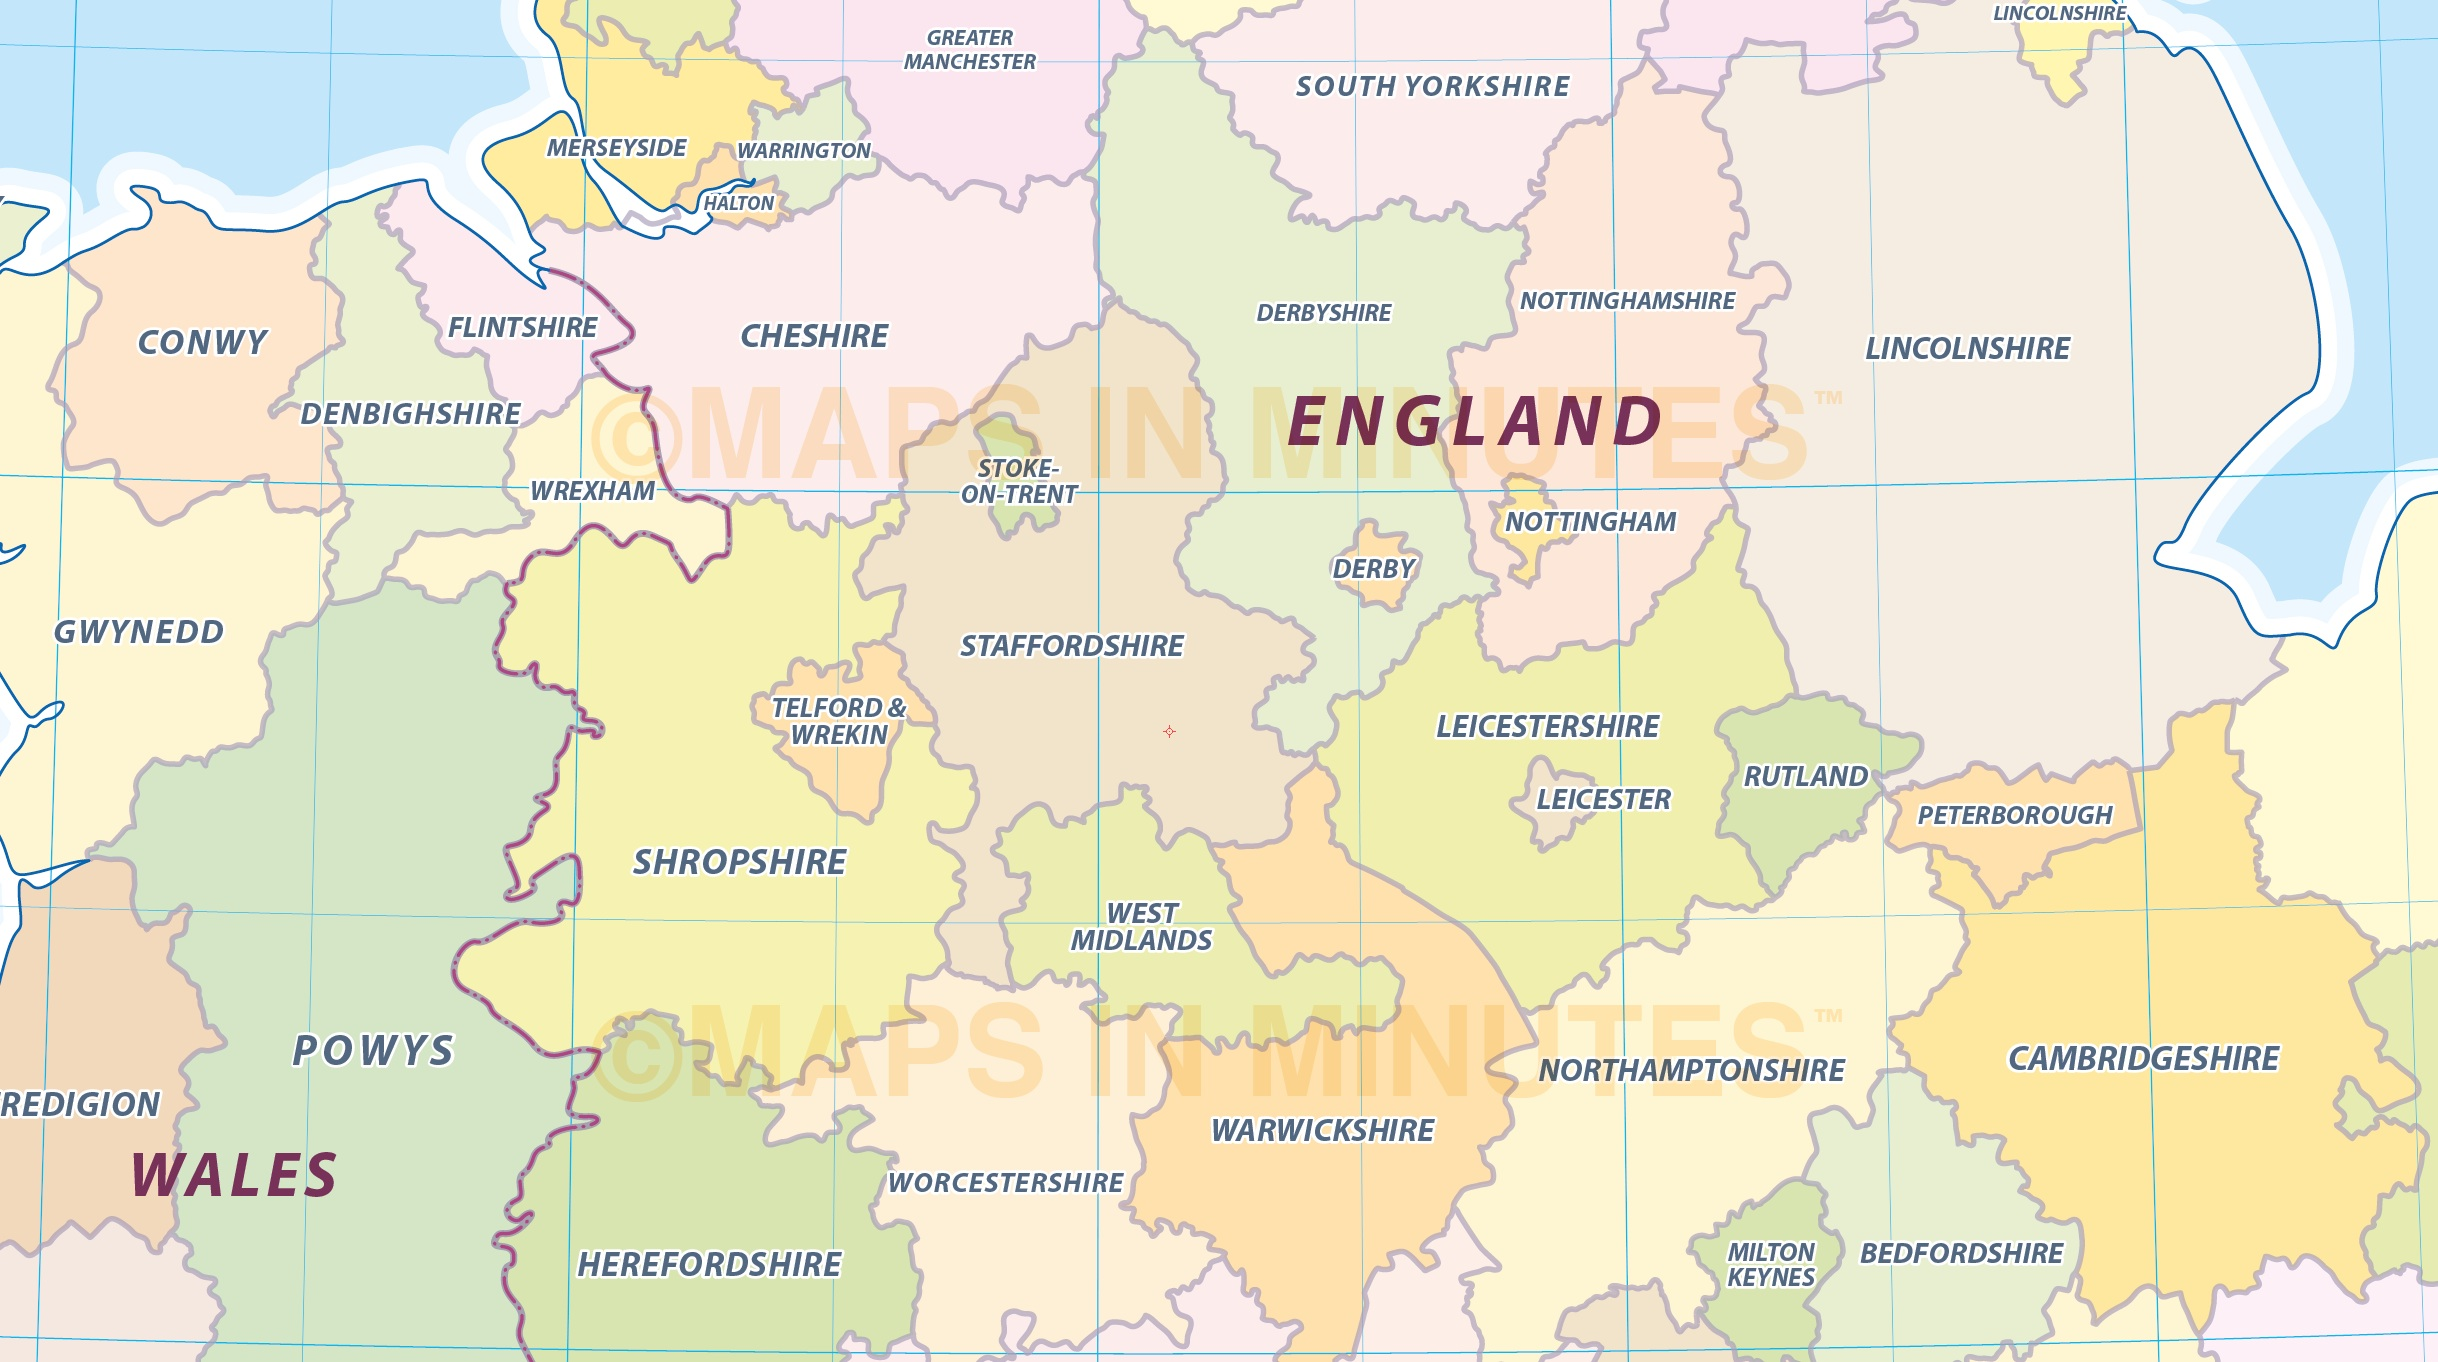 Map Of England And Counties.Digital Uk Simple County Administrative Map 5 000 000 Scale